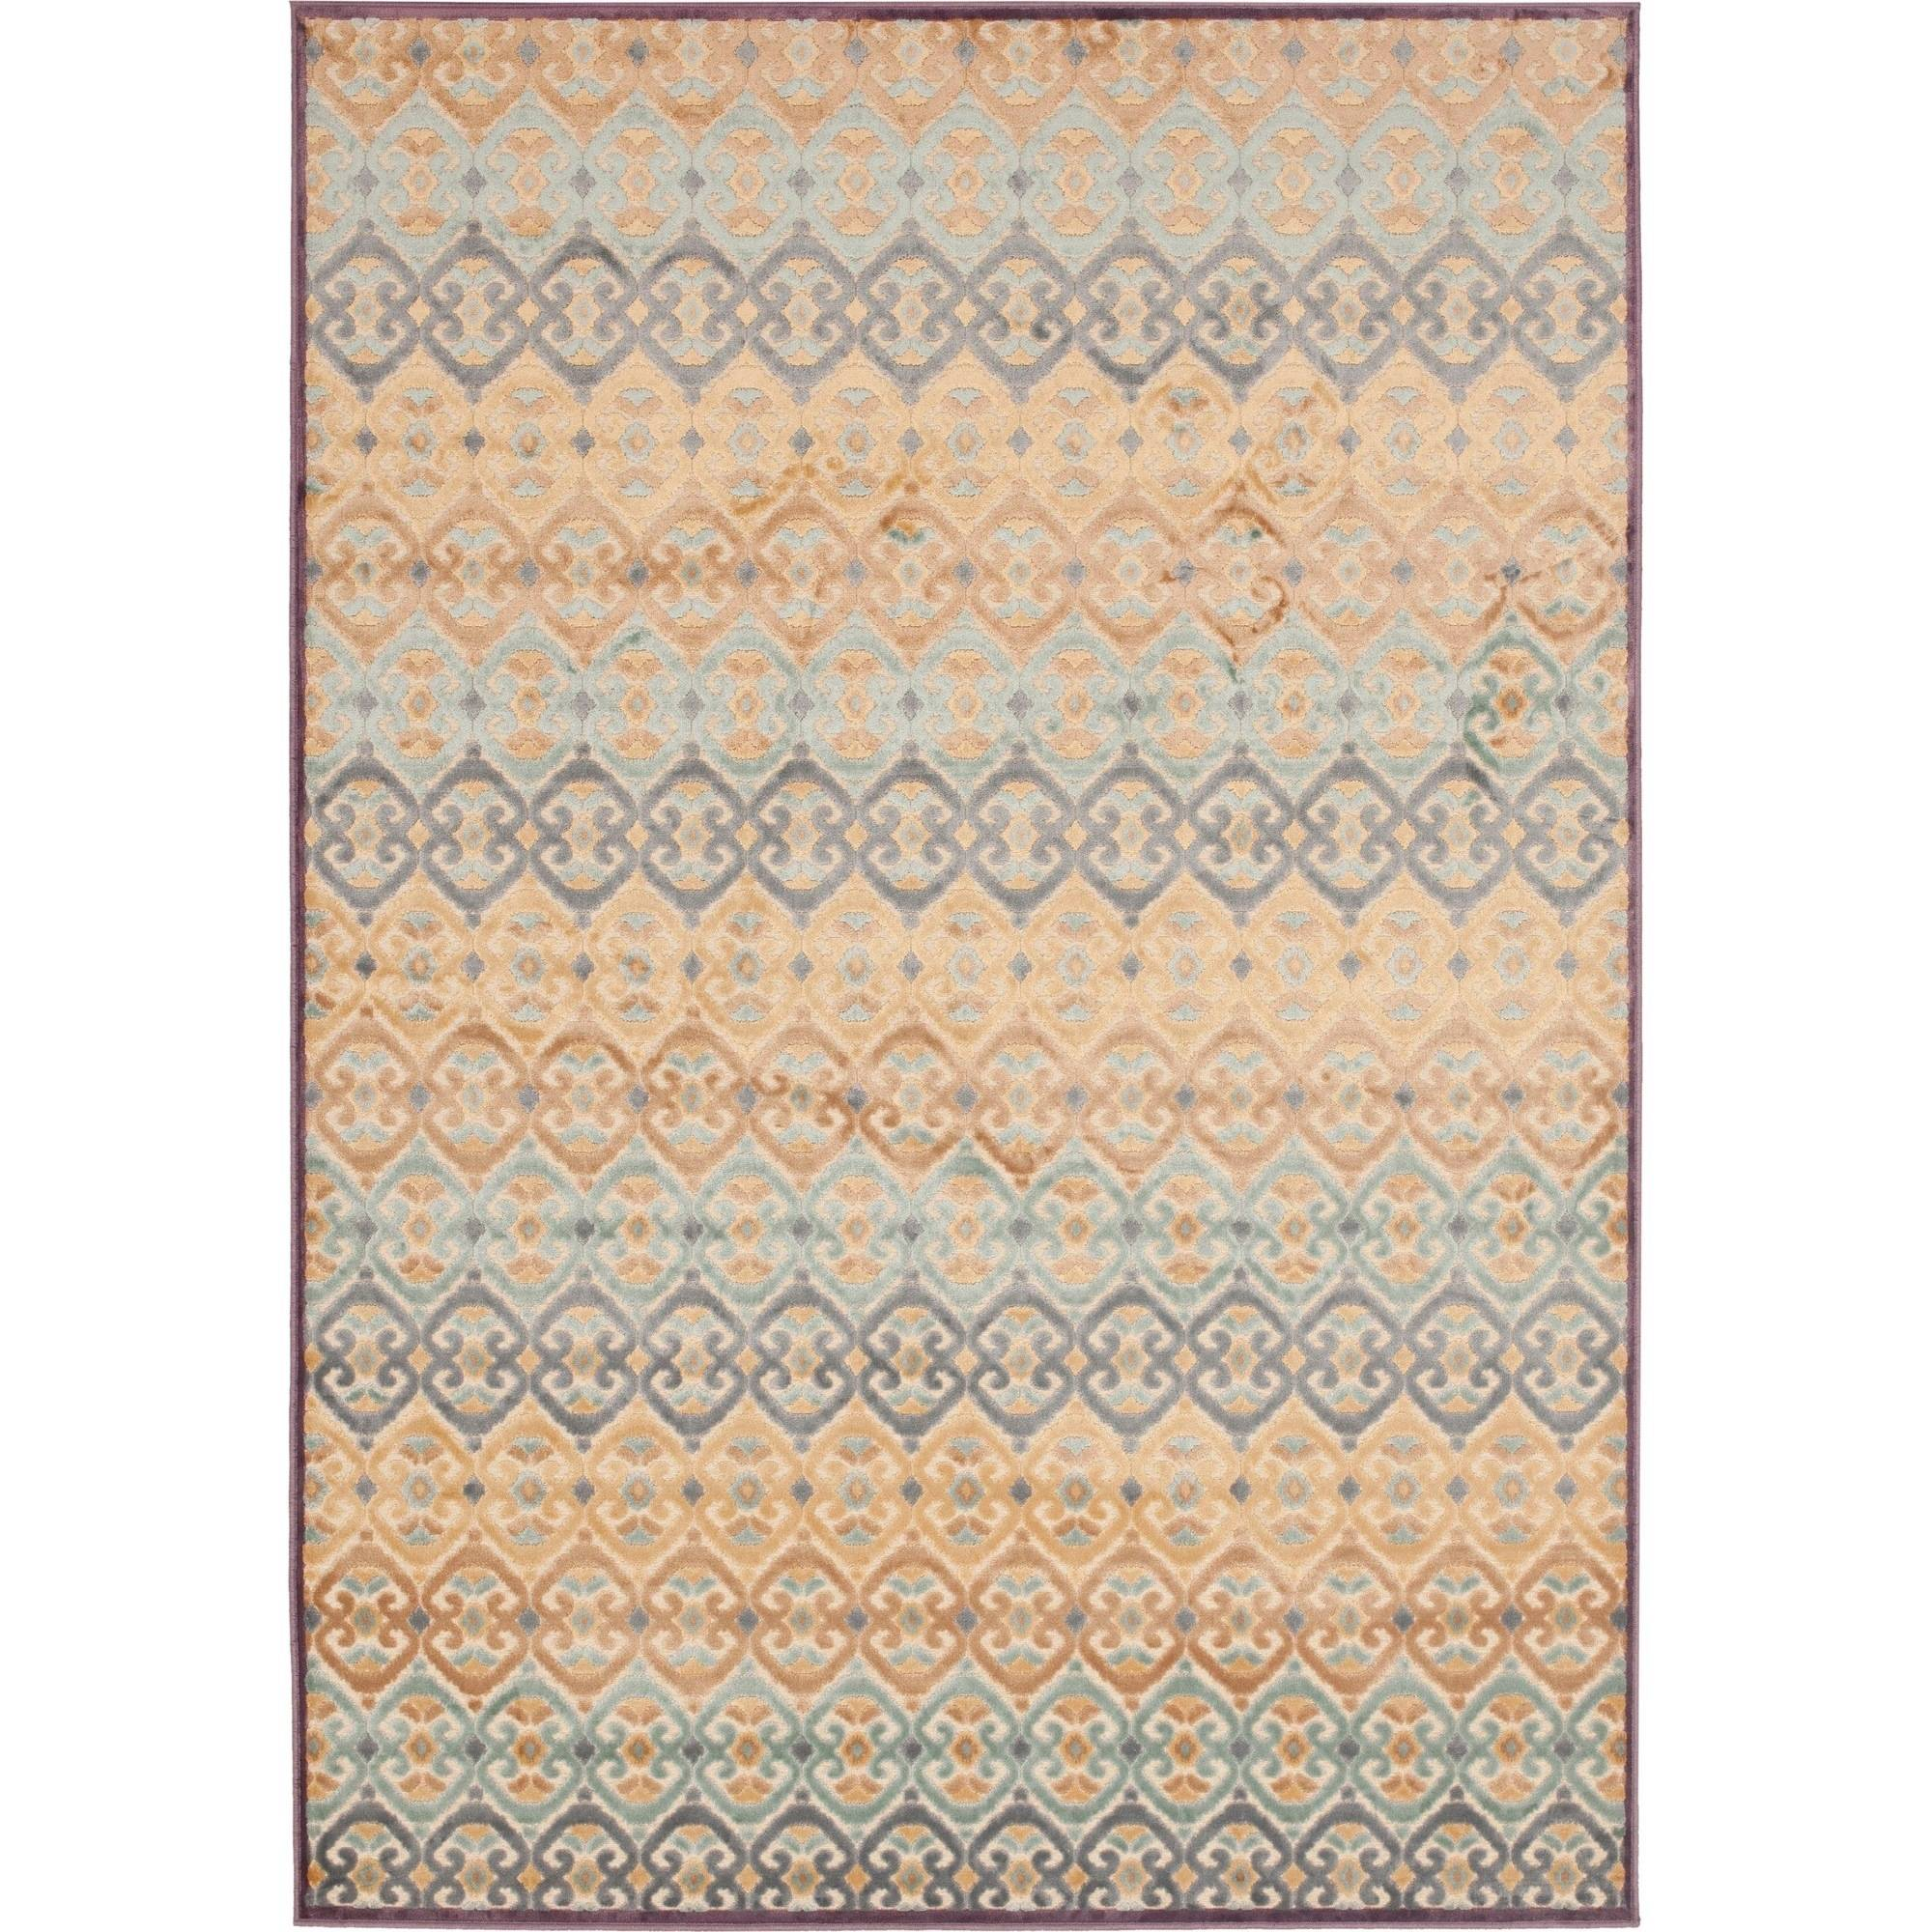 Safavieh Paradise Angelina Power Loomed Viscose Area Rug, Mauve/Multi